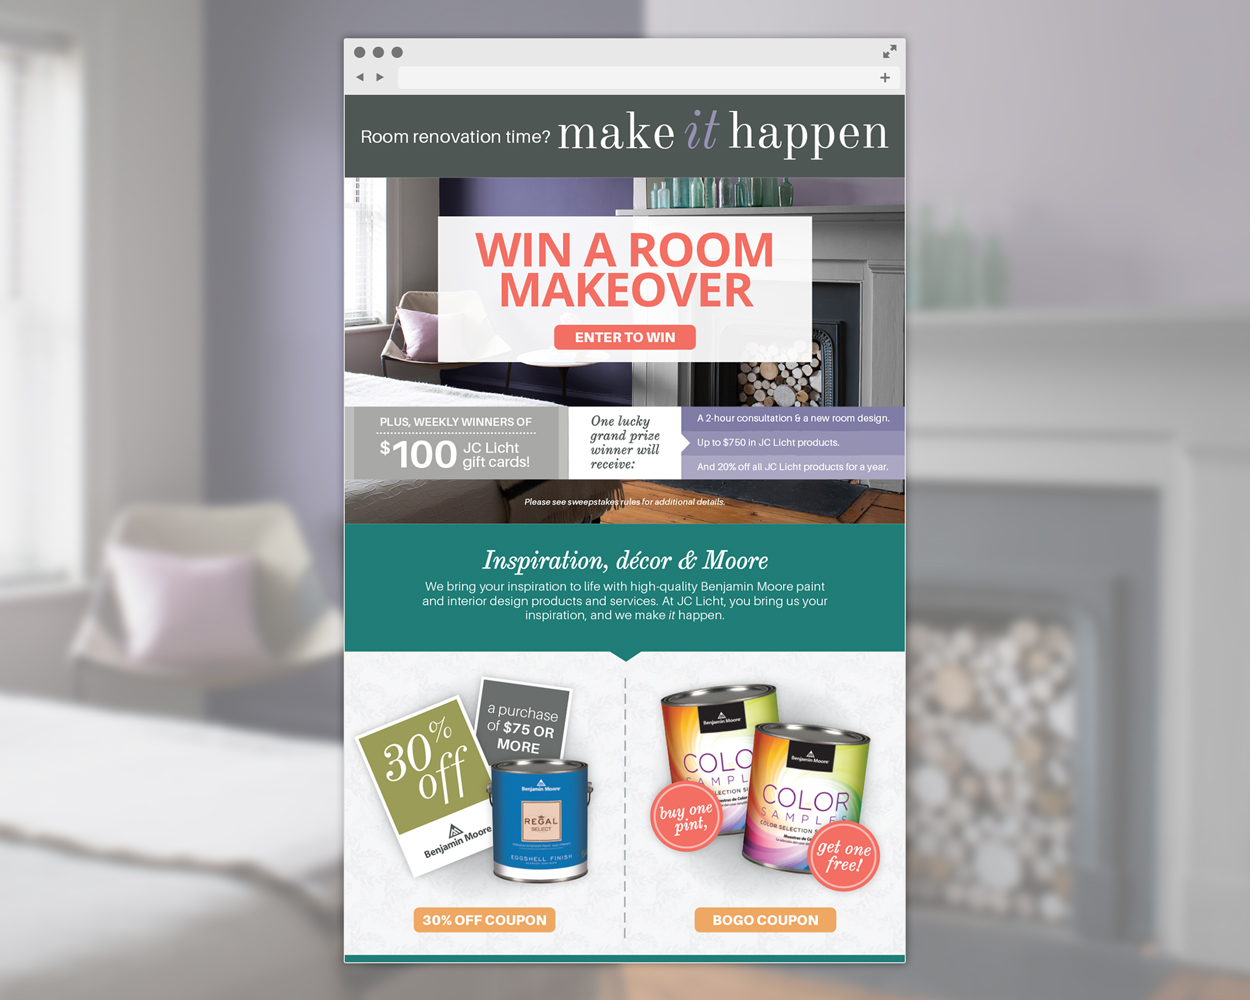 Win a room renovation on us